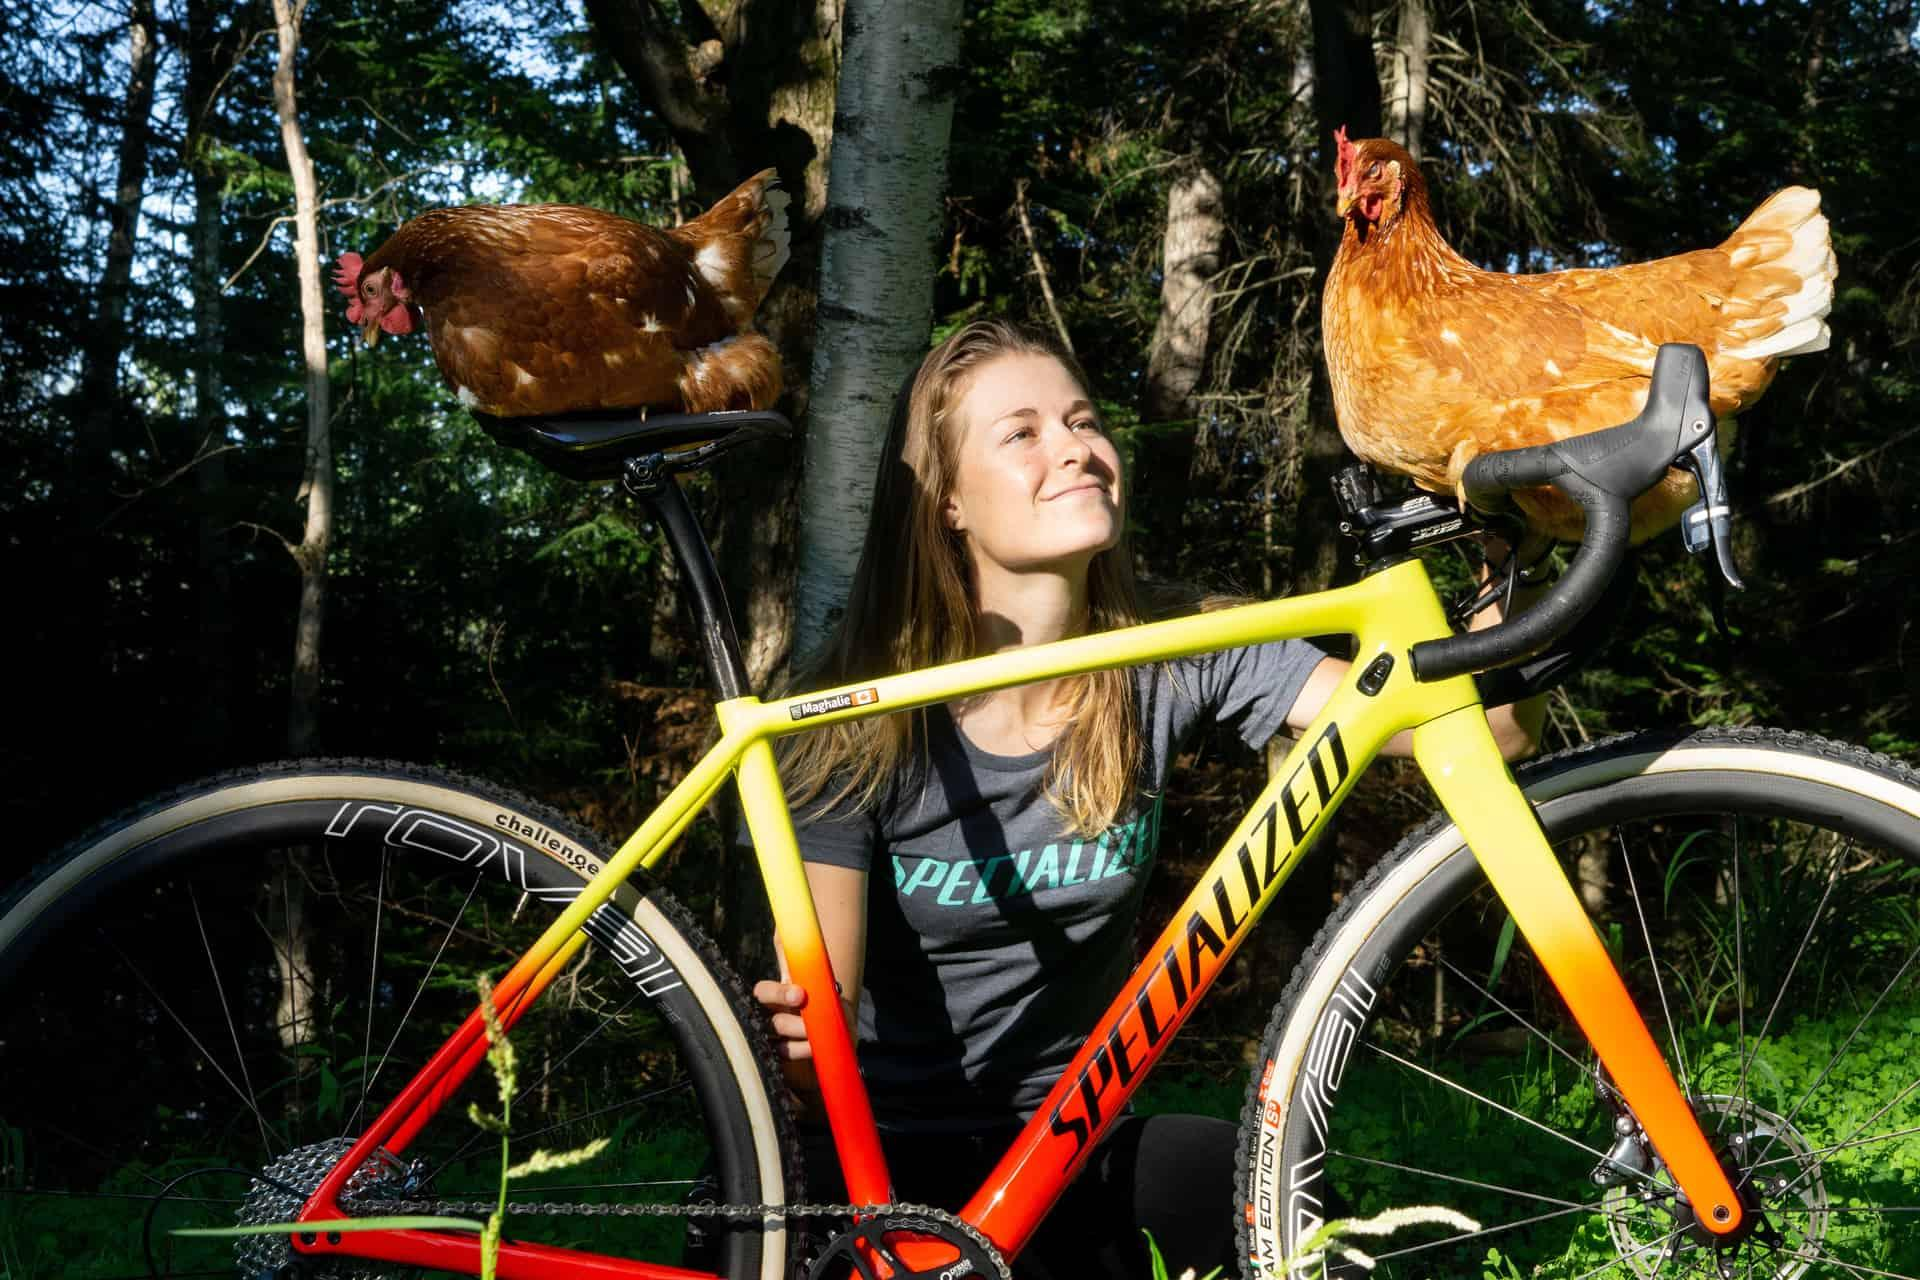 chicken standing on bicycle